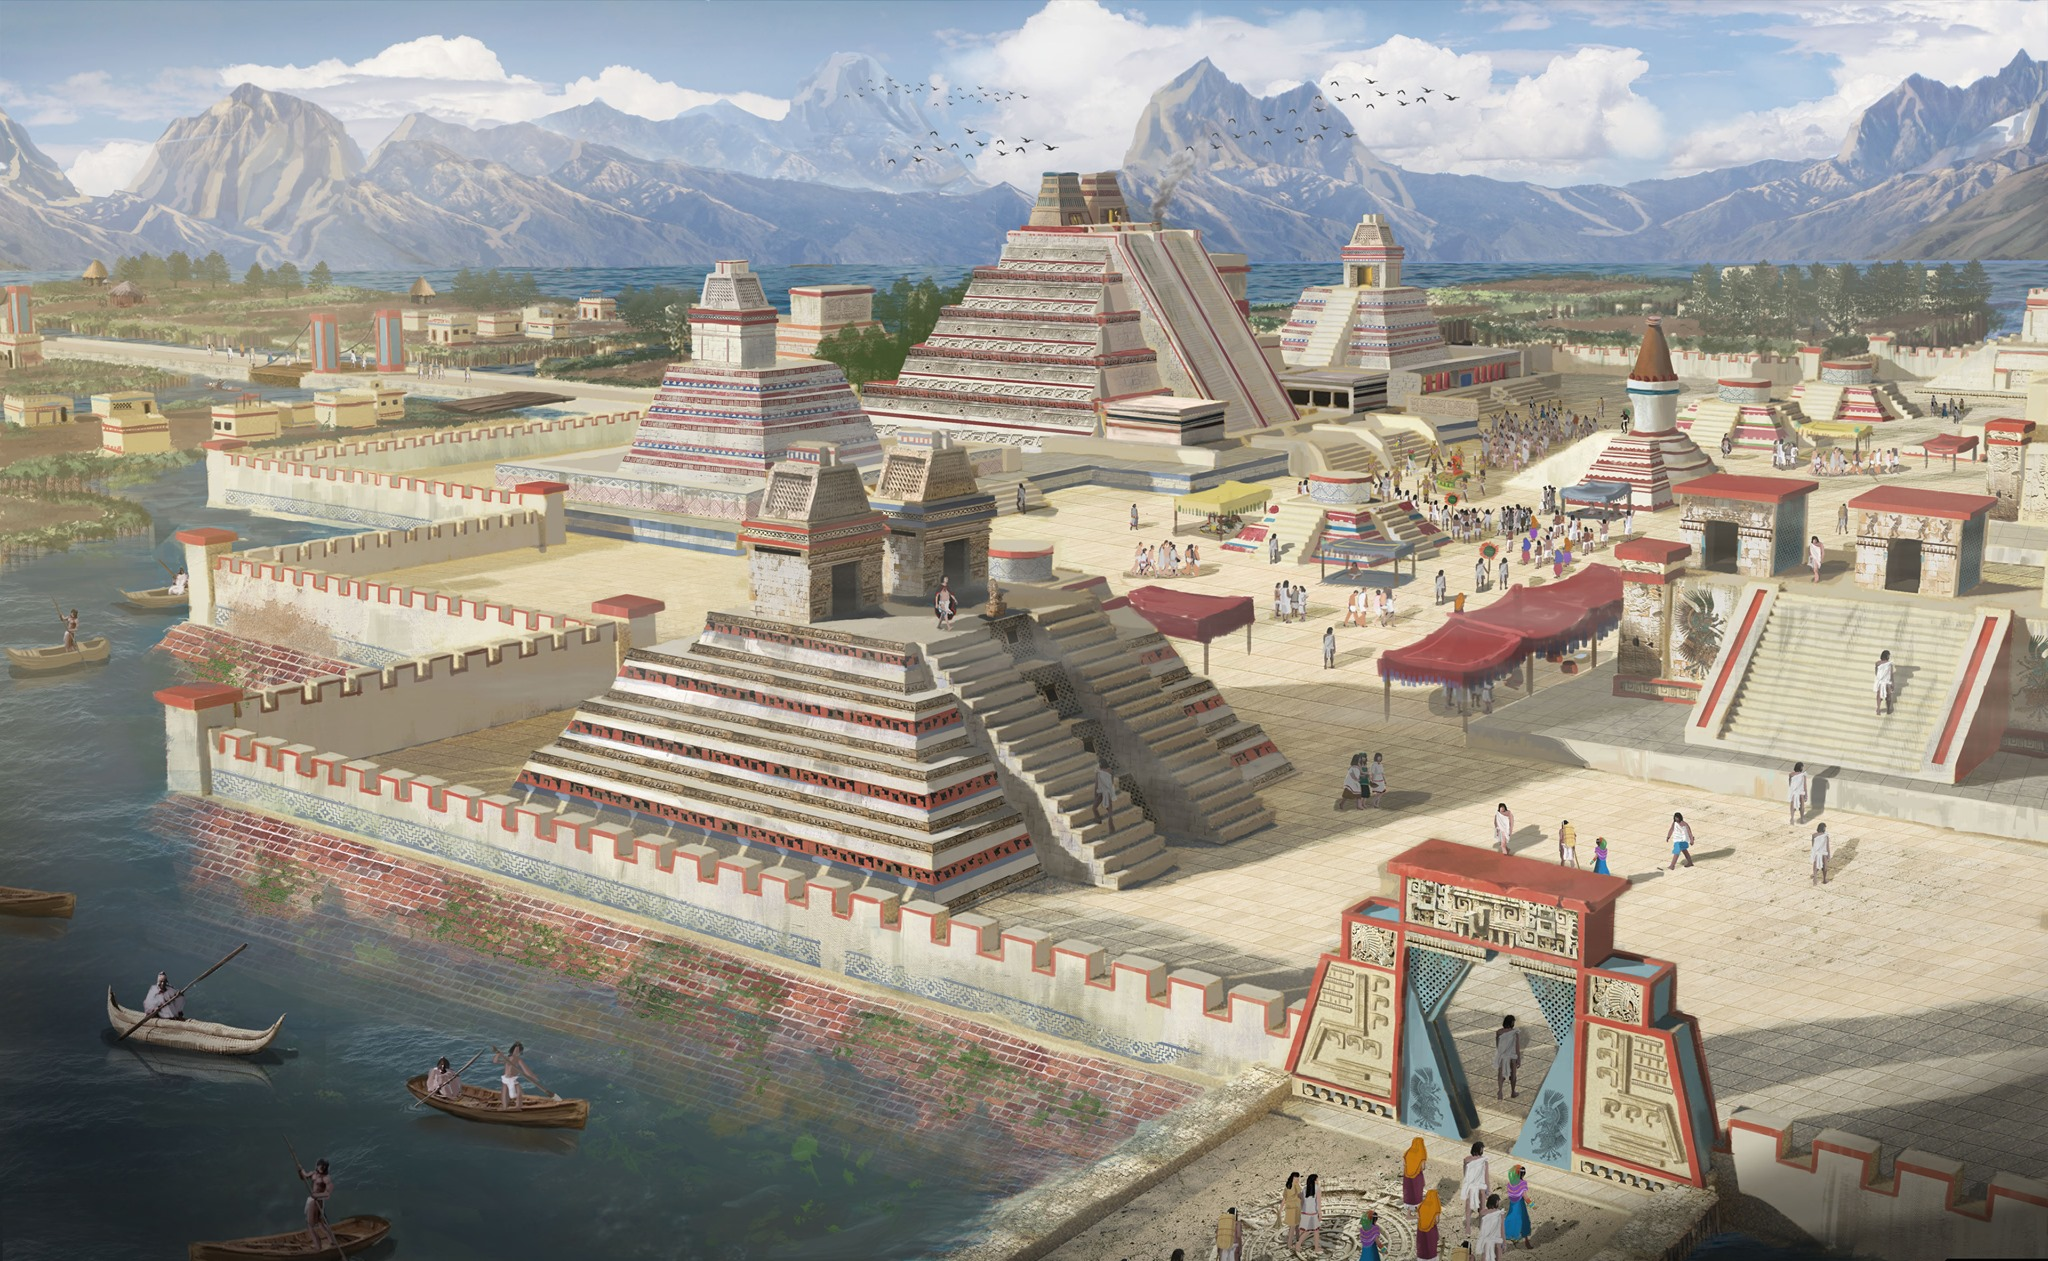 Mictlan: An Ancient and Mythical Tale